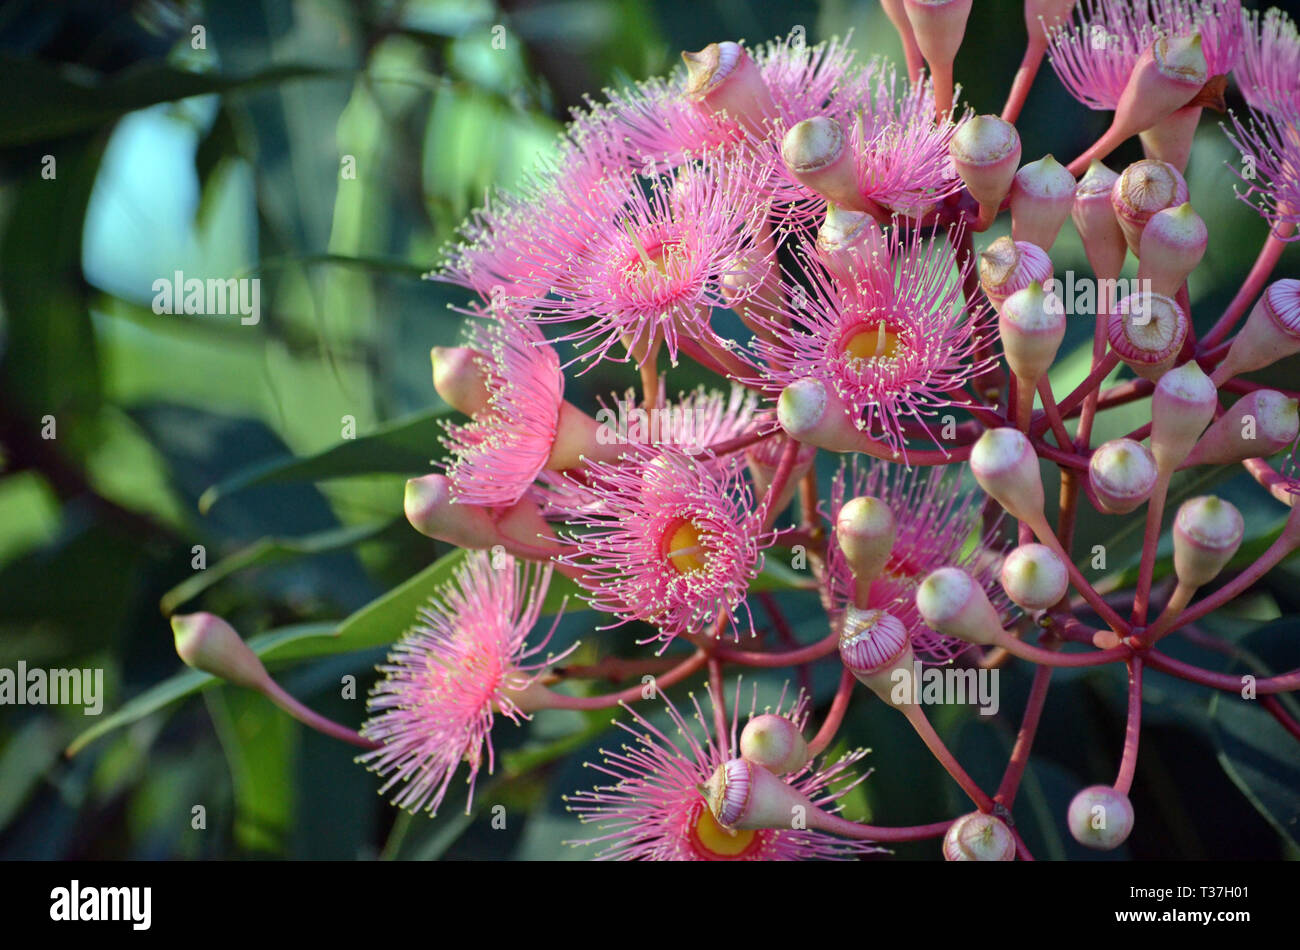 Pink blossoms and buds of the Australian native Corymbia cultivar Summer Beauty, family Myrtaceae. - Stock Image